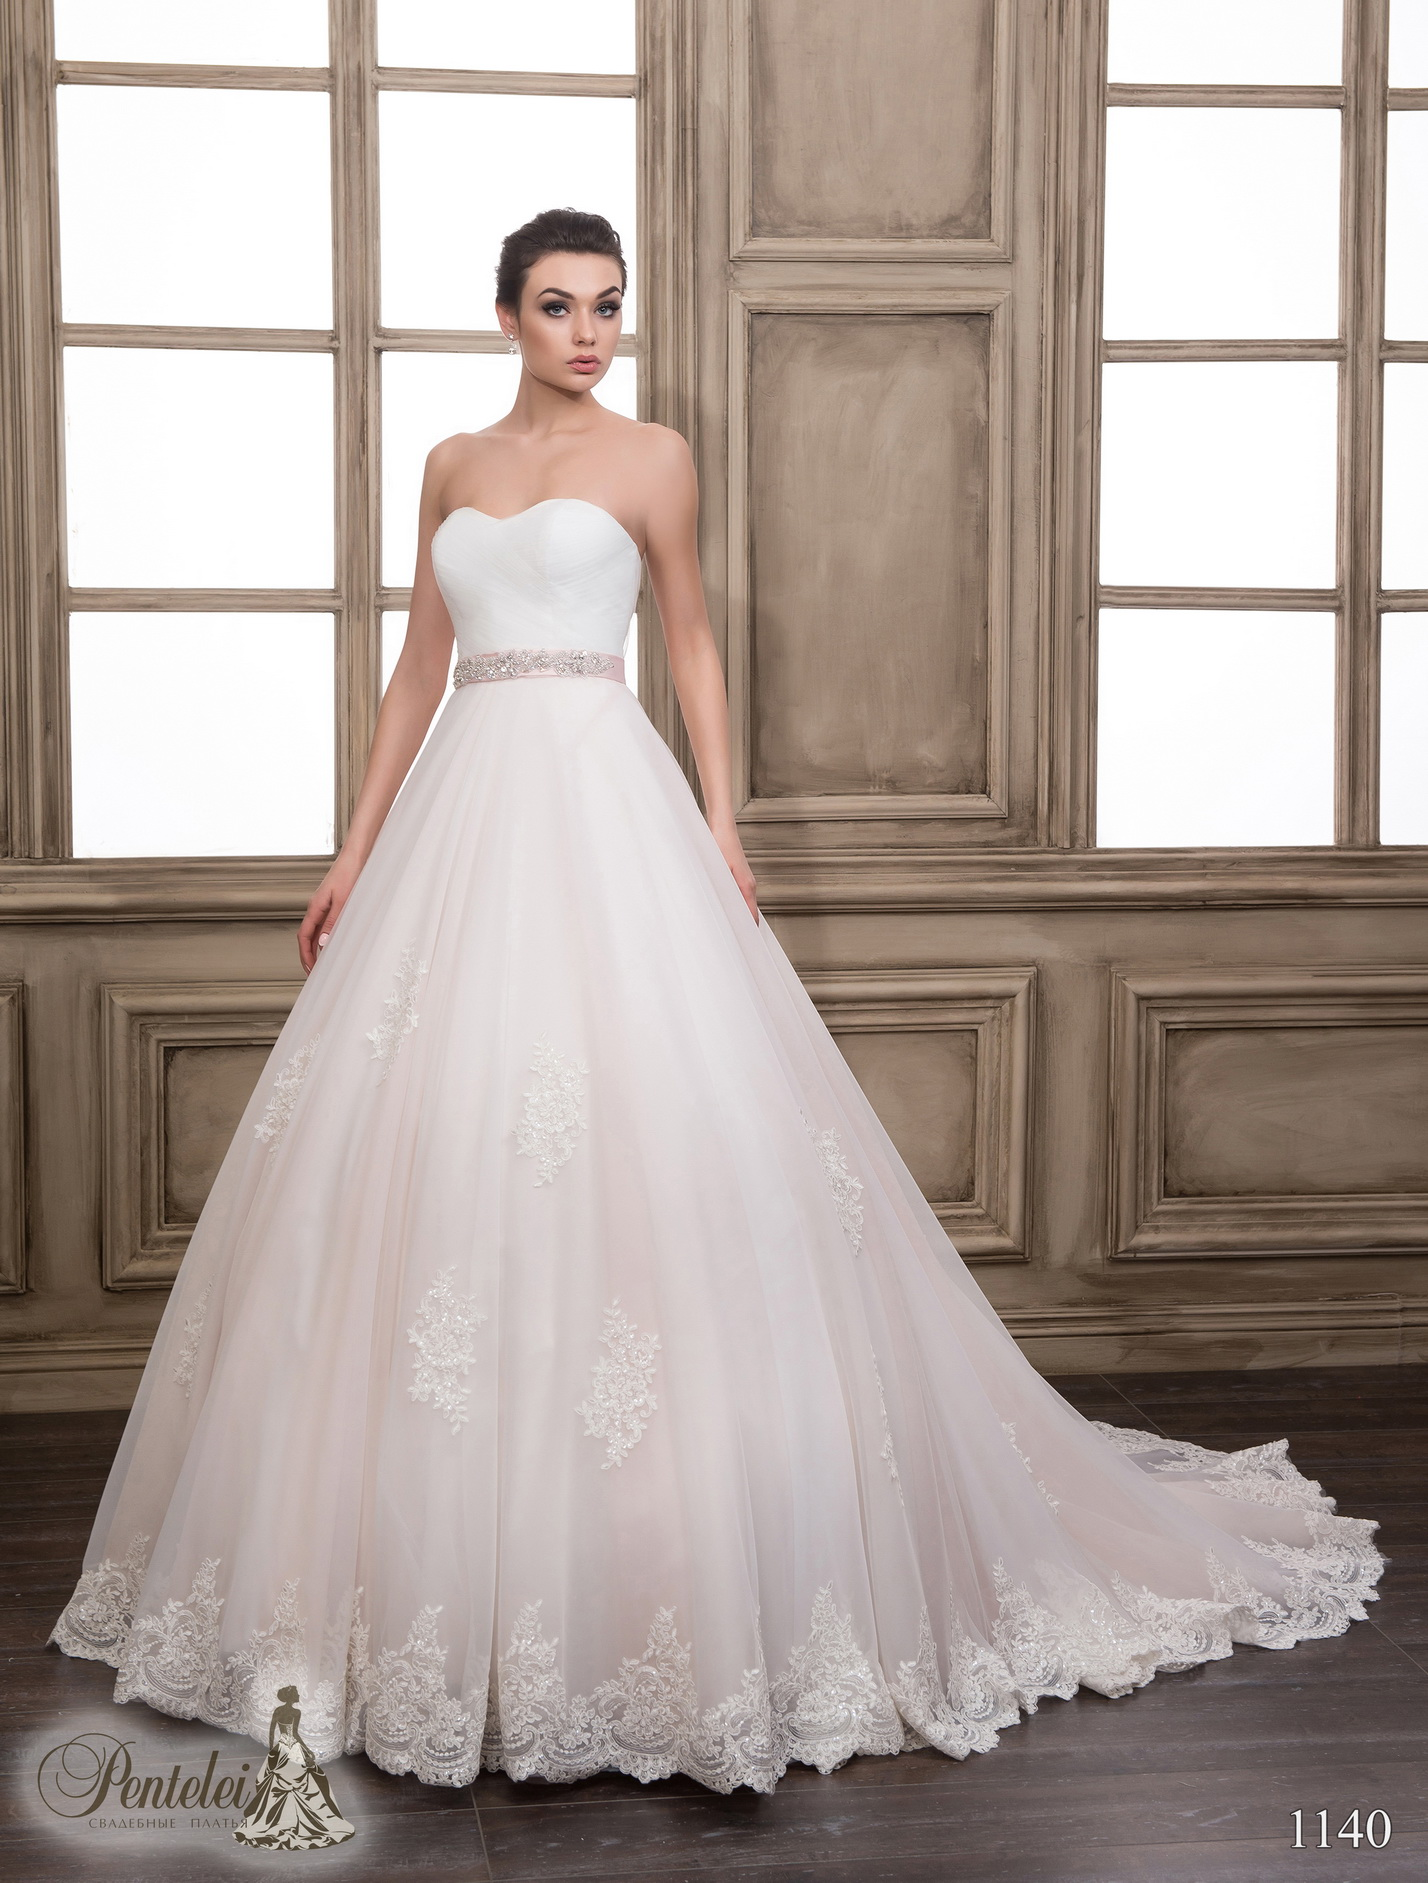 1140 | Buy wedding dresses wholesale from Pentelei